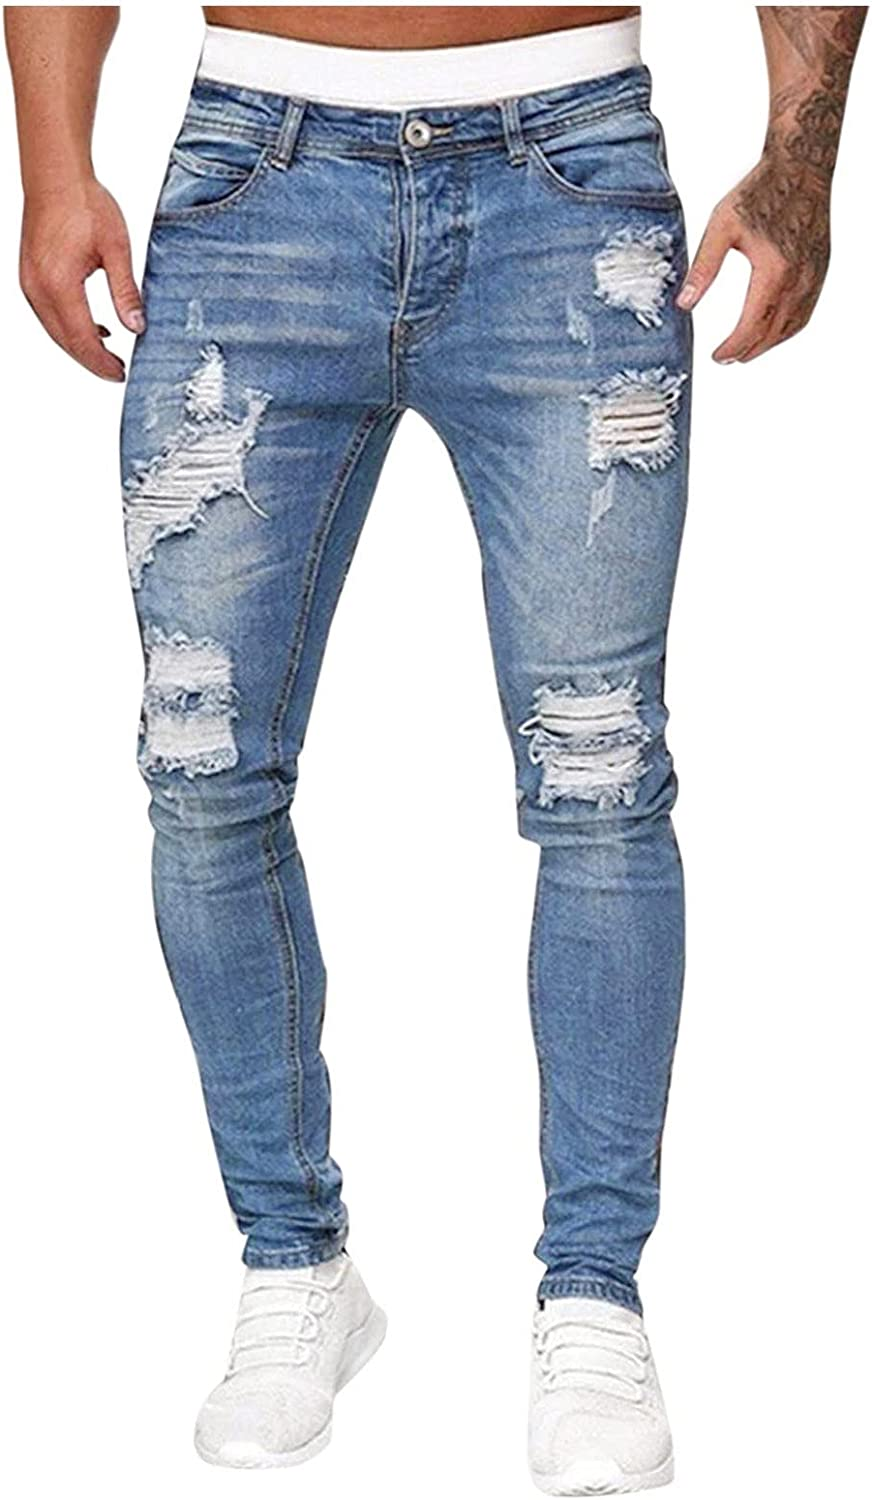 Men's Baltimore Mall Relaxed Fit Jeans Mens 2021 Jean Classic Sl Regular Skinny